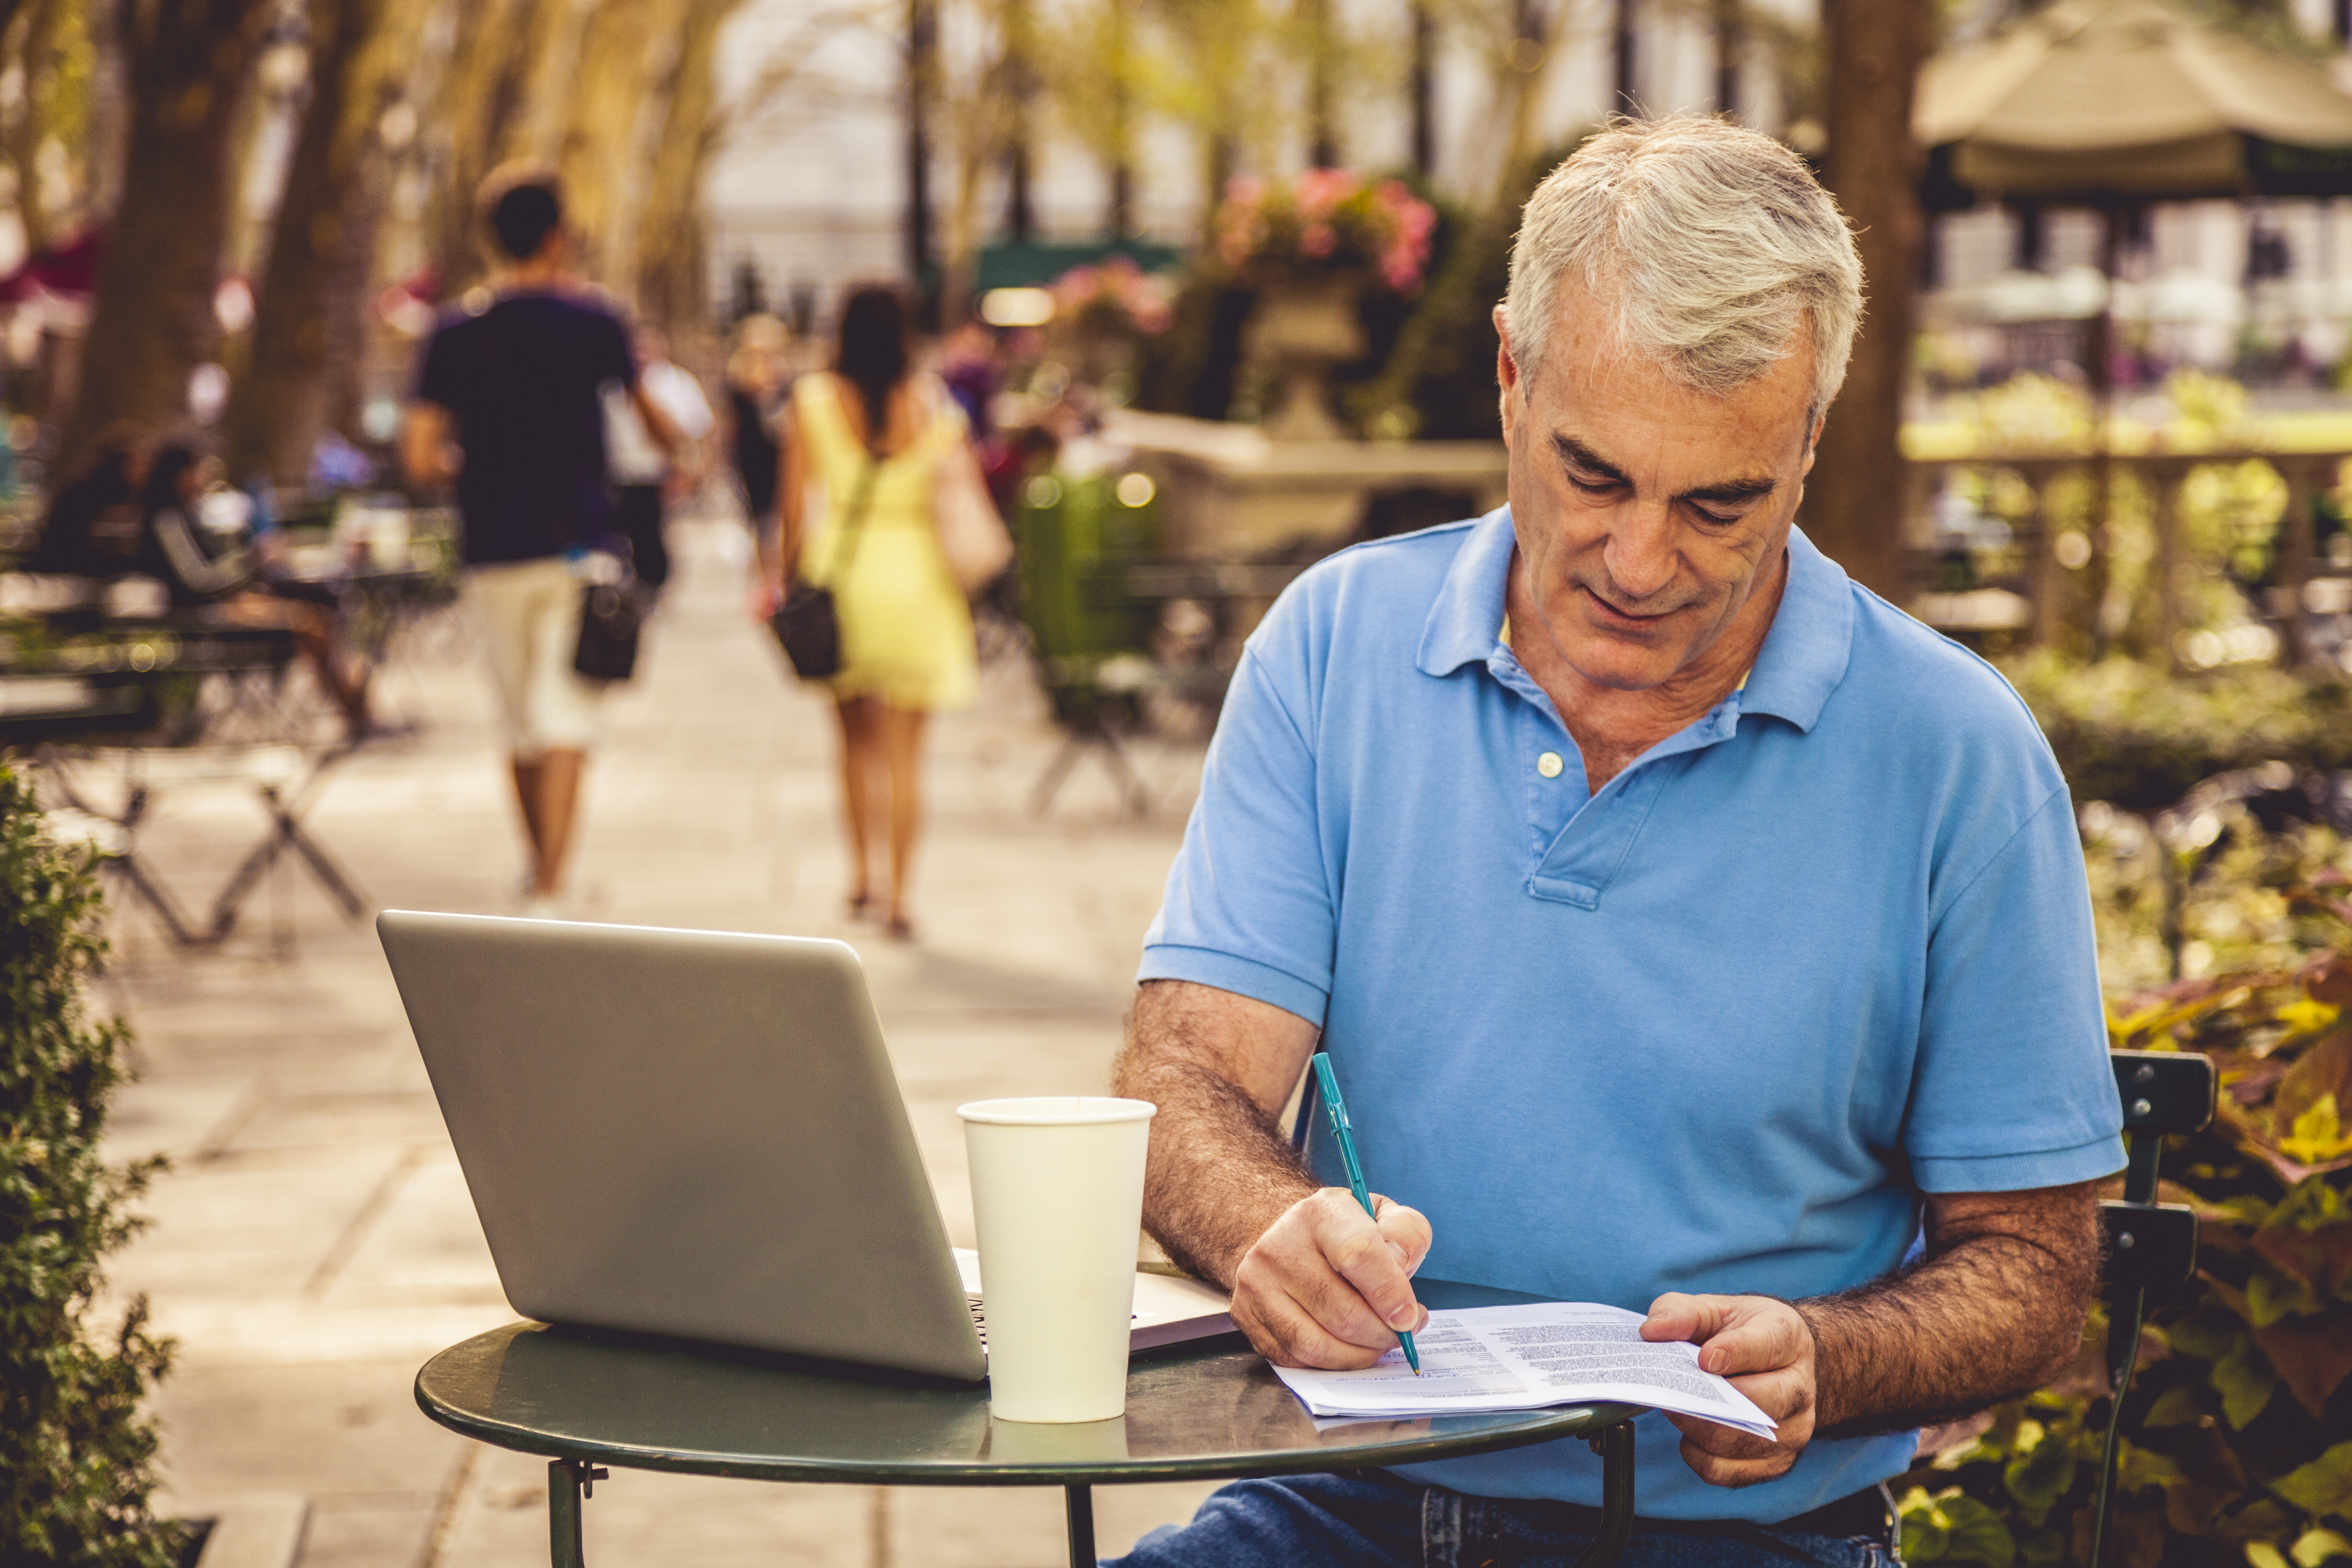 Man filling documents in a public area in New York